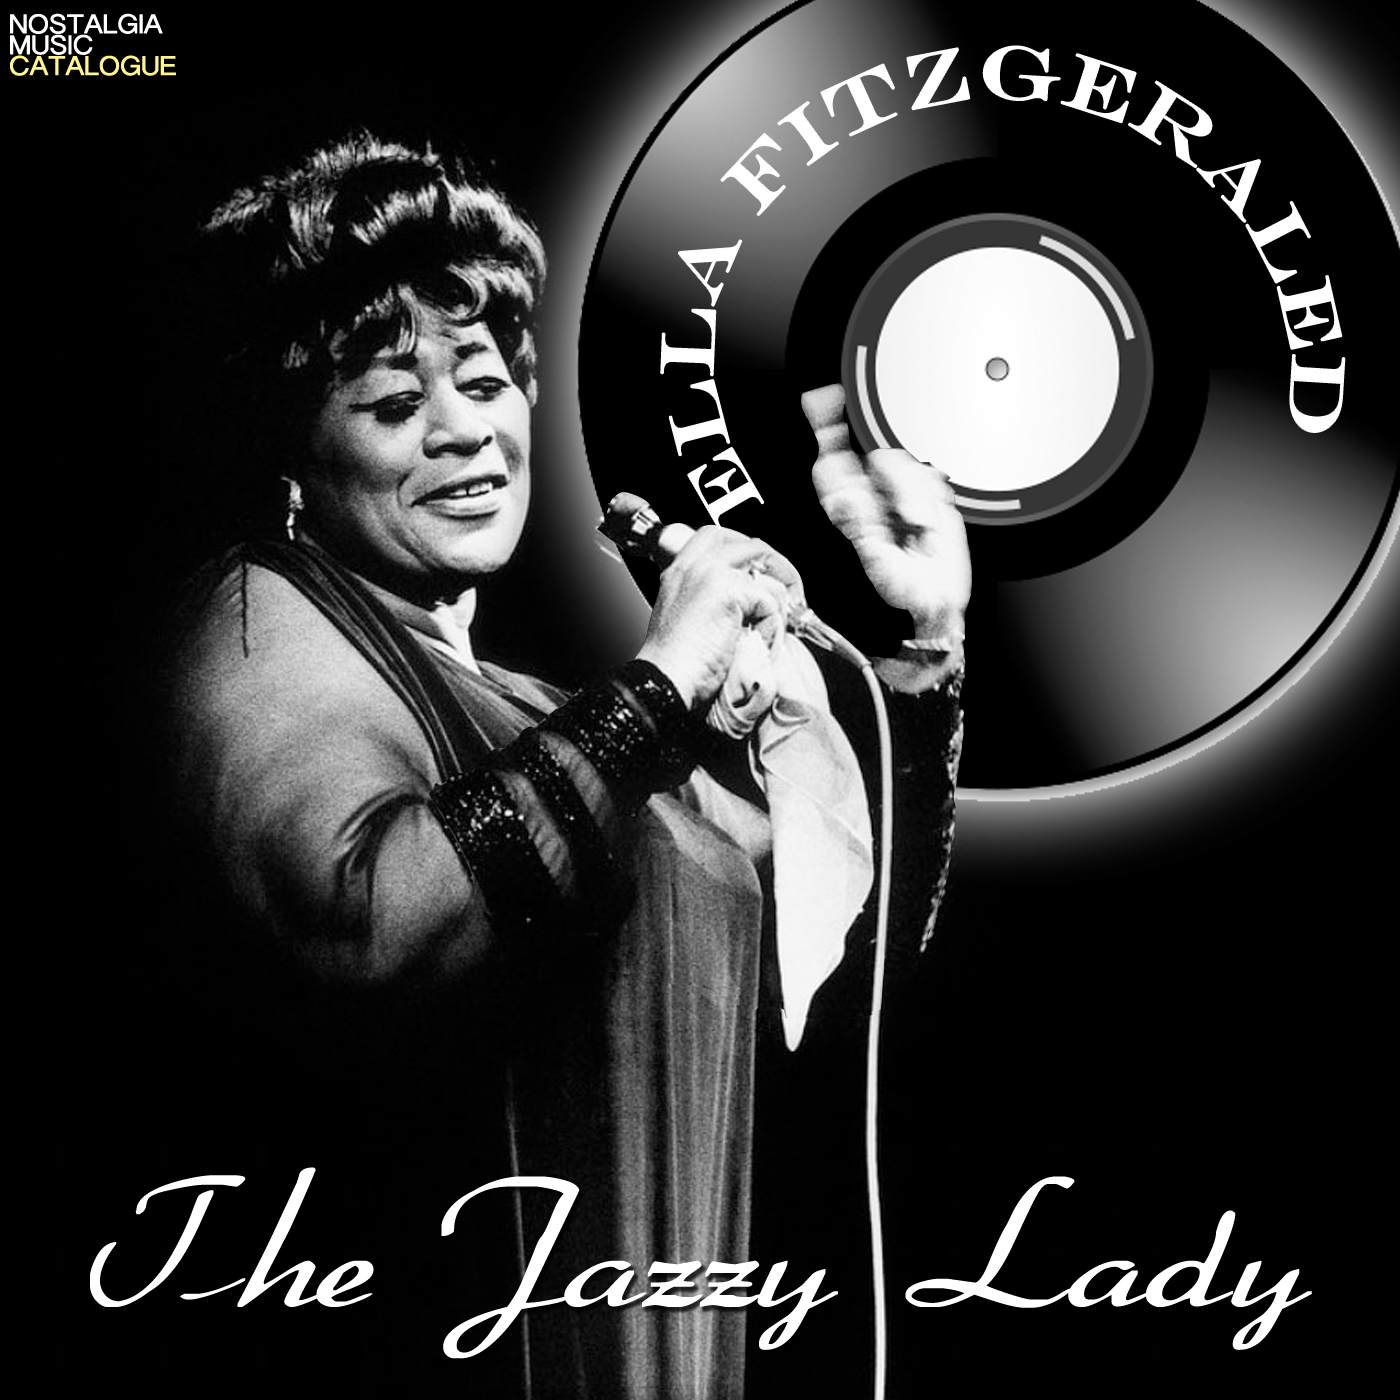 Jazzy Lady - Ella Fitzgeraled - NMC - NEW